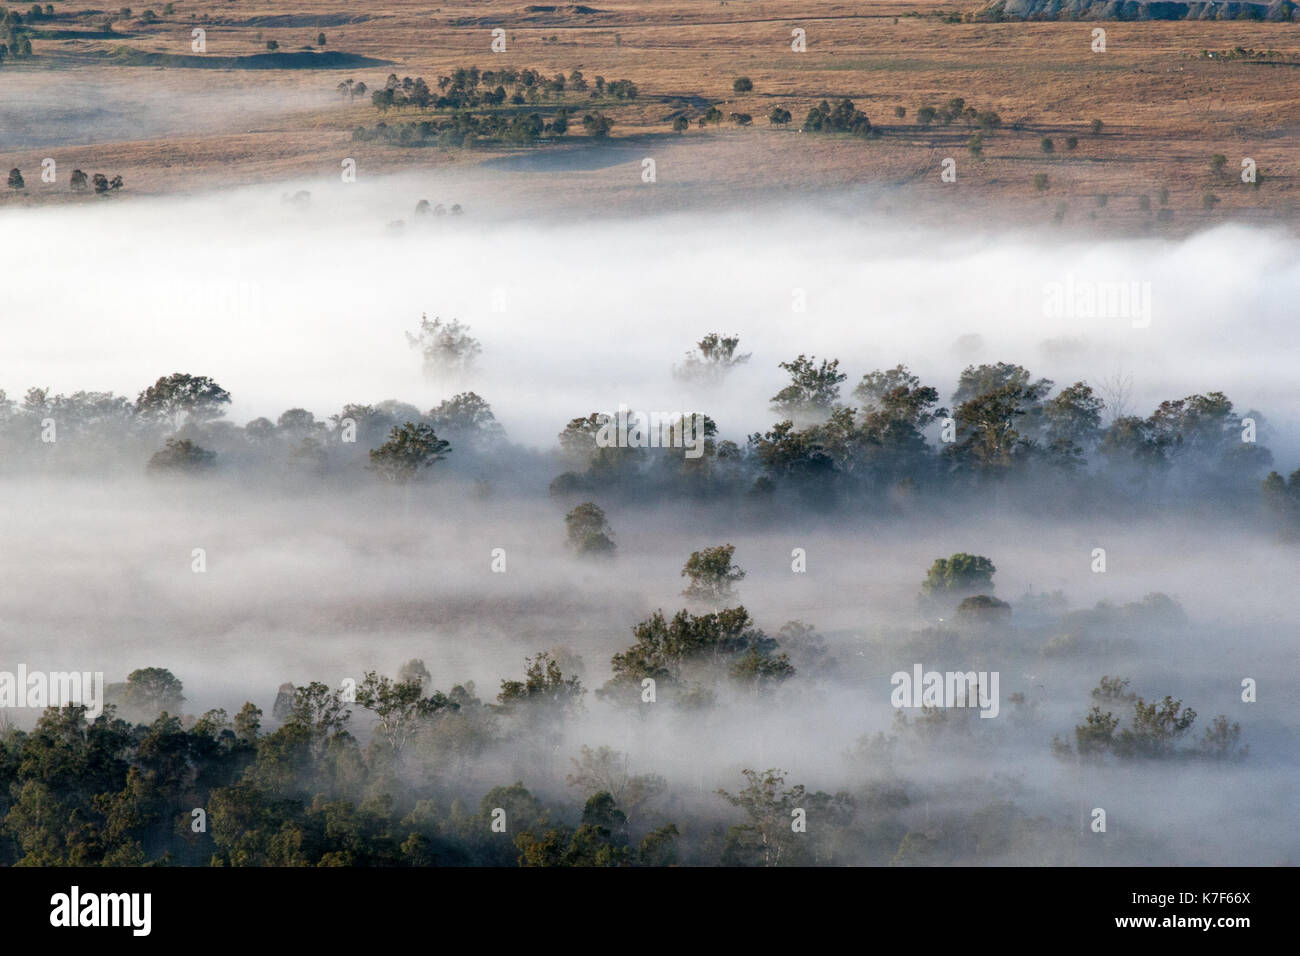 Low early morning cloud covers the ground in outback Australia and makes it seem less harsh. - Stock Image